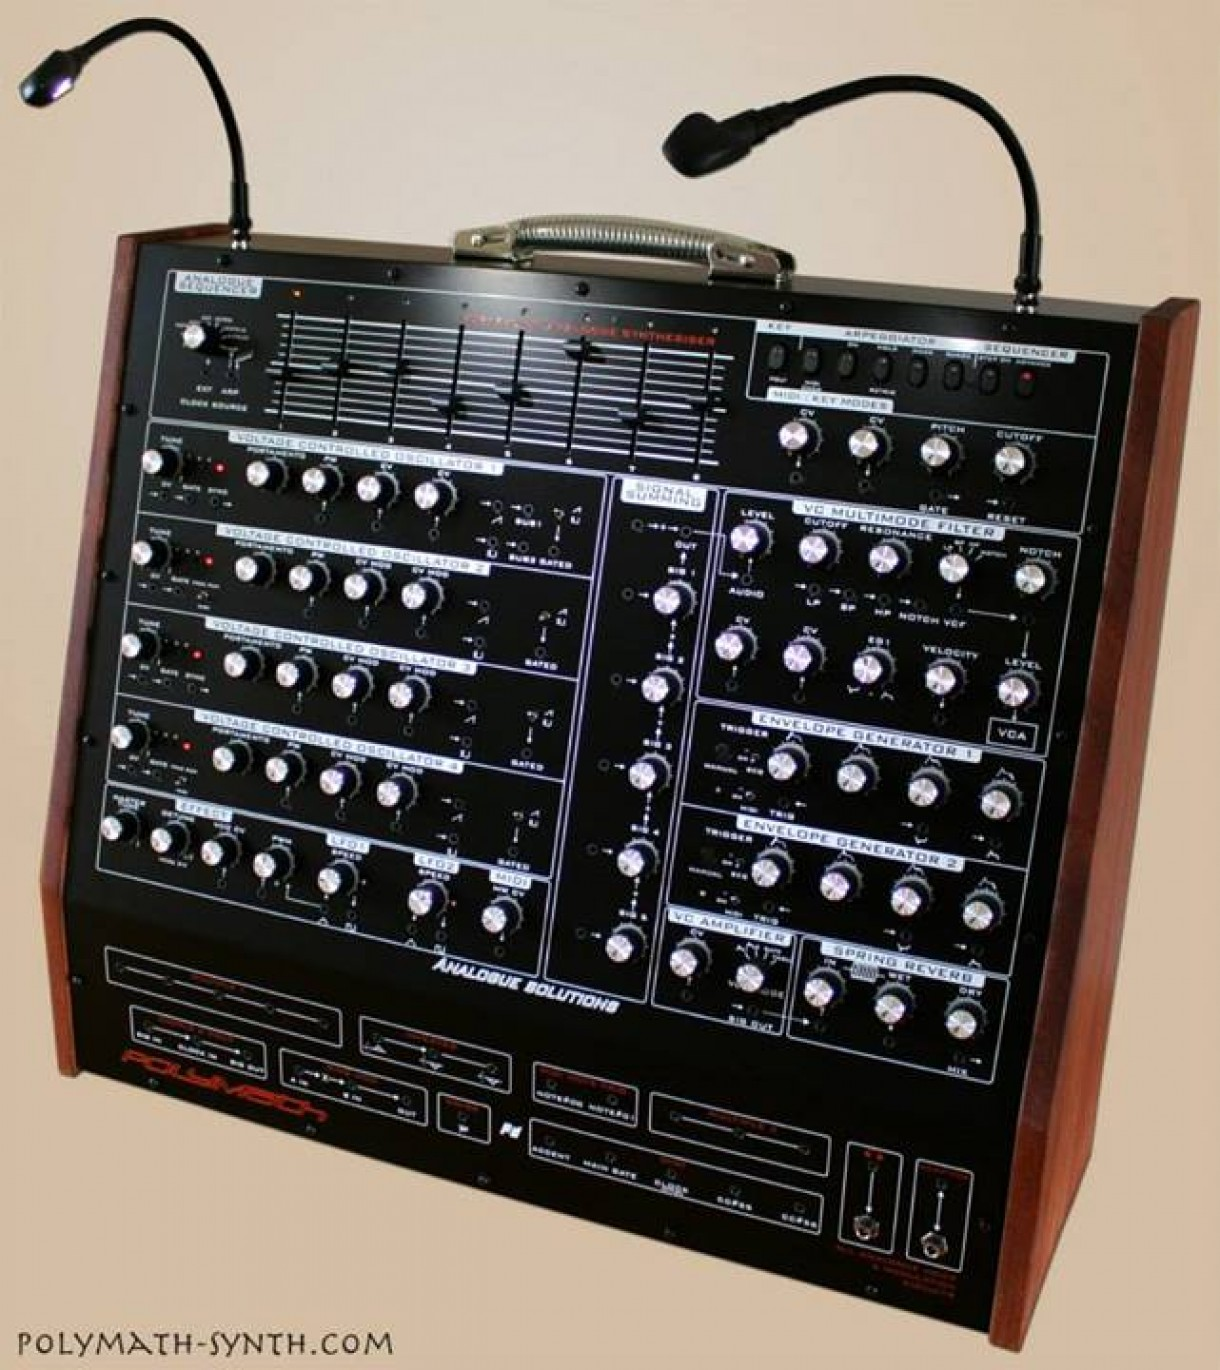 'Polymath' synth